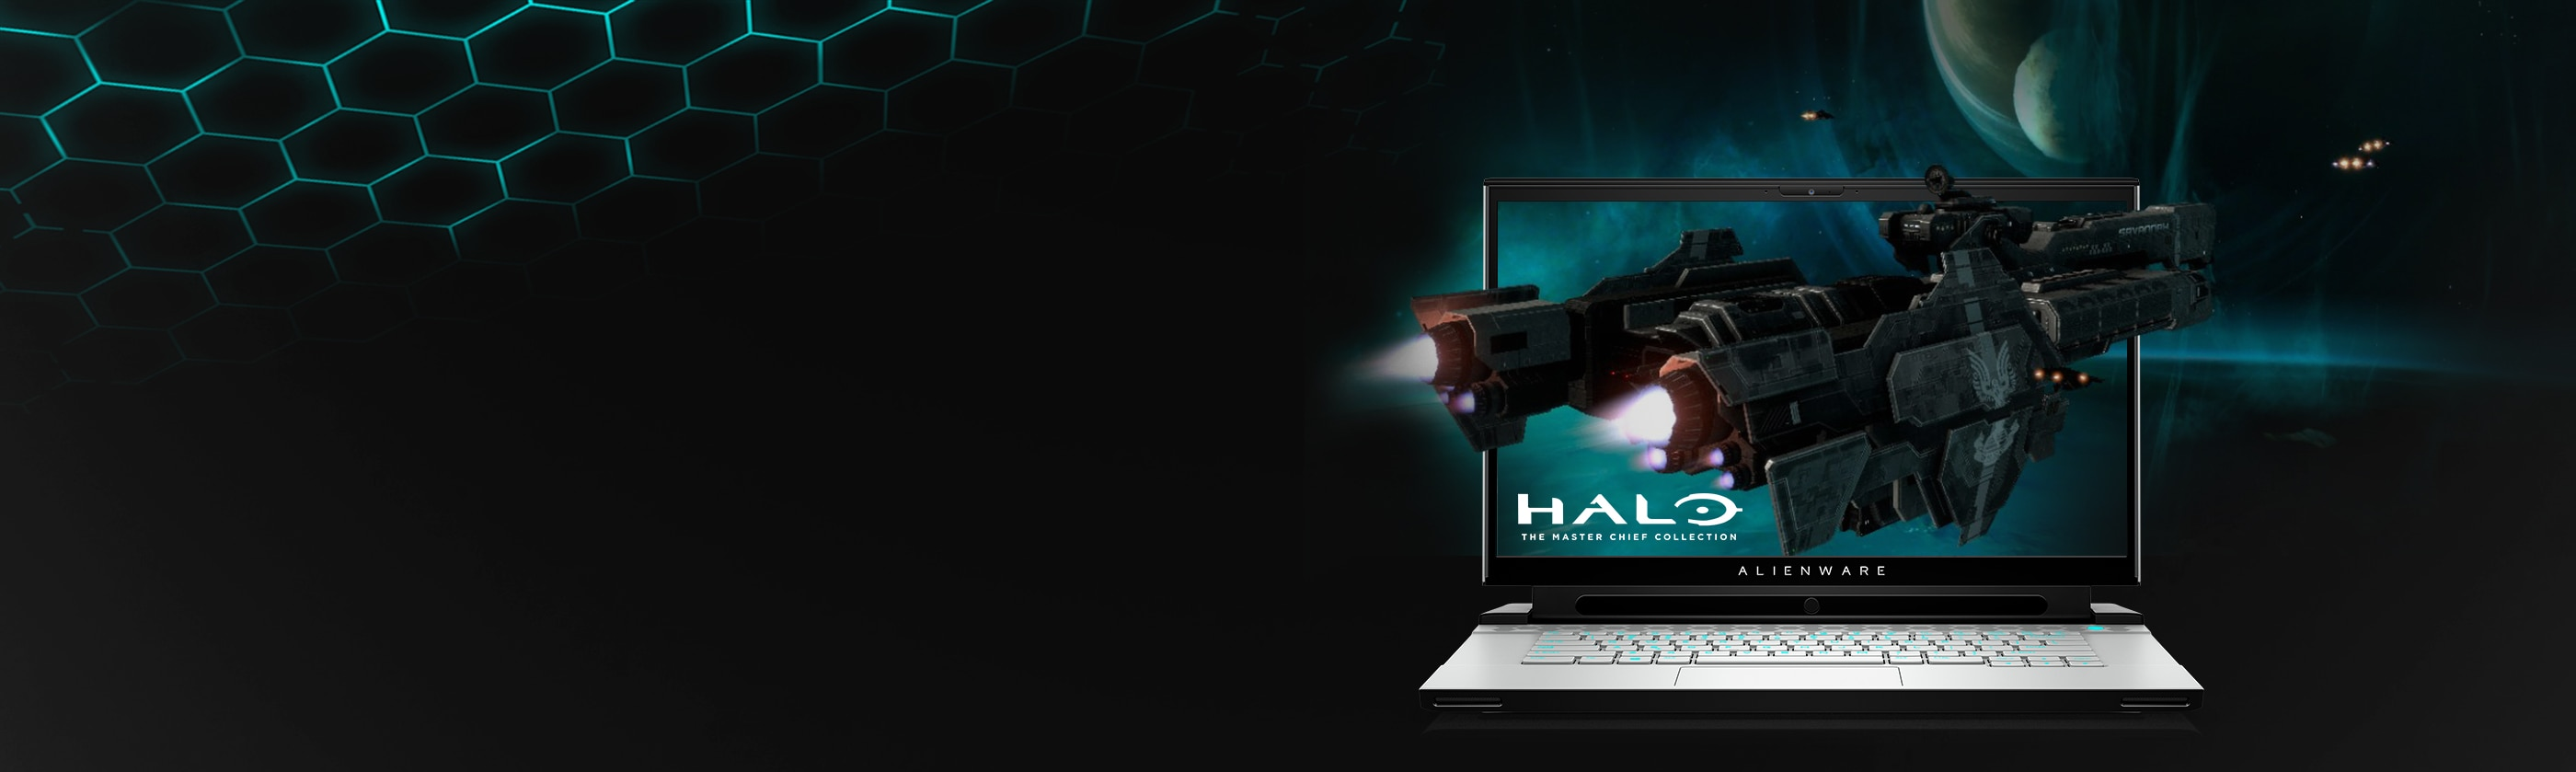 NEW ALIENWARE M15 GAMING LAPTOP - Thinnest gaming laptop ever